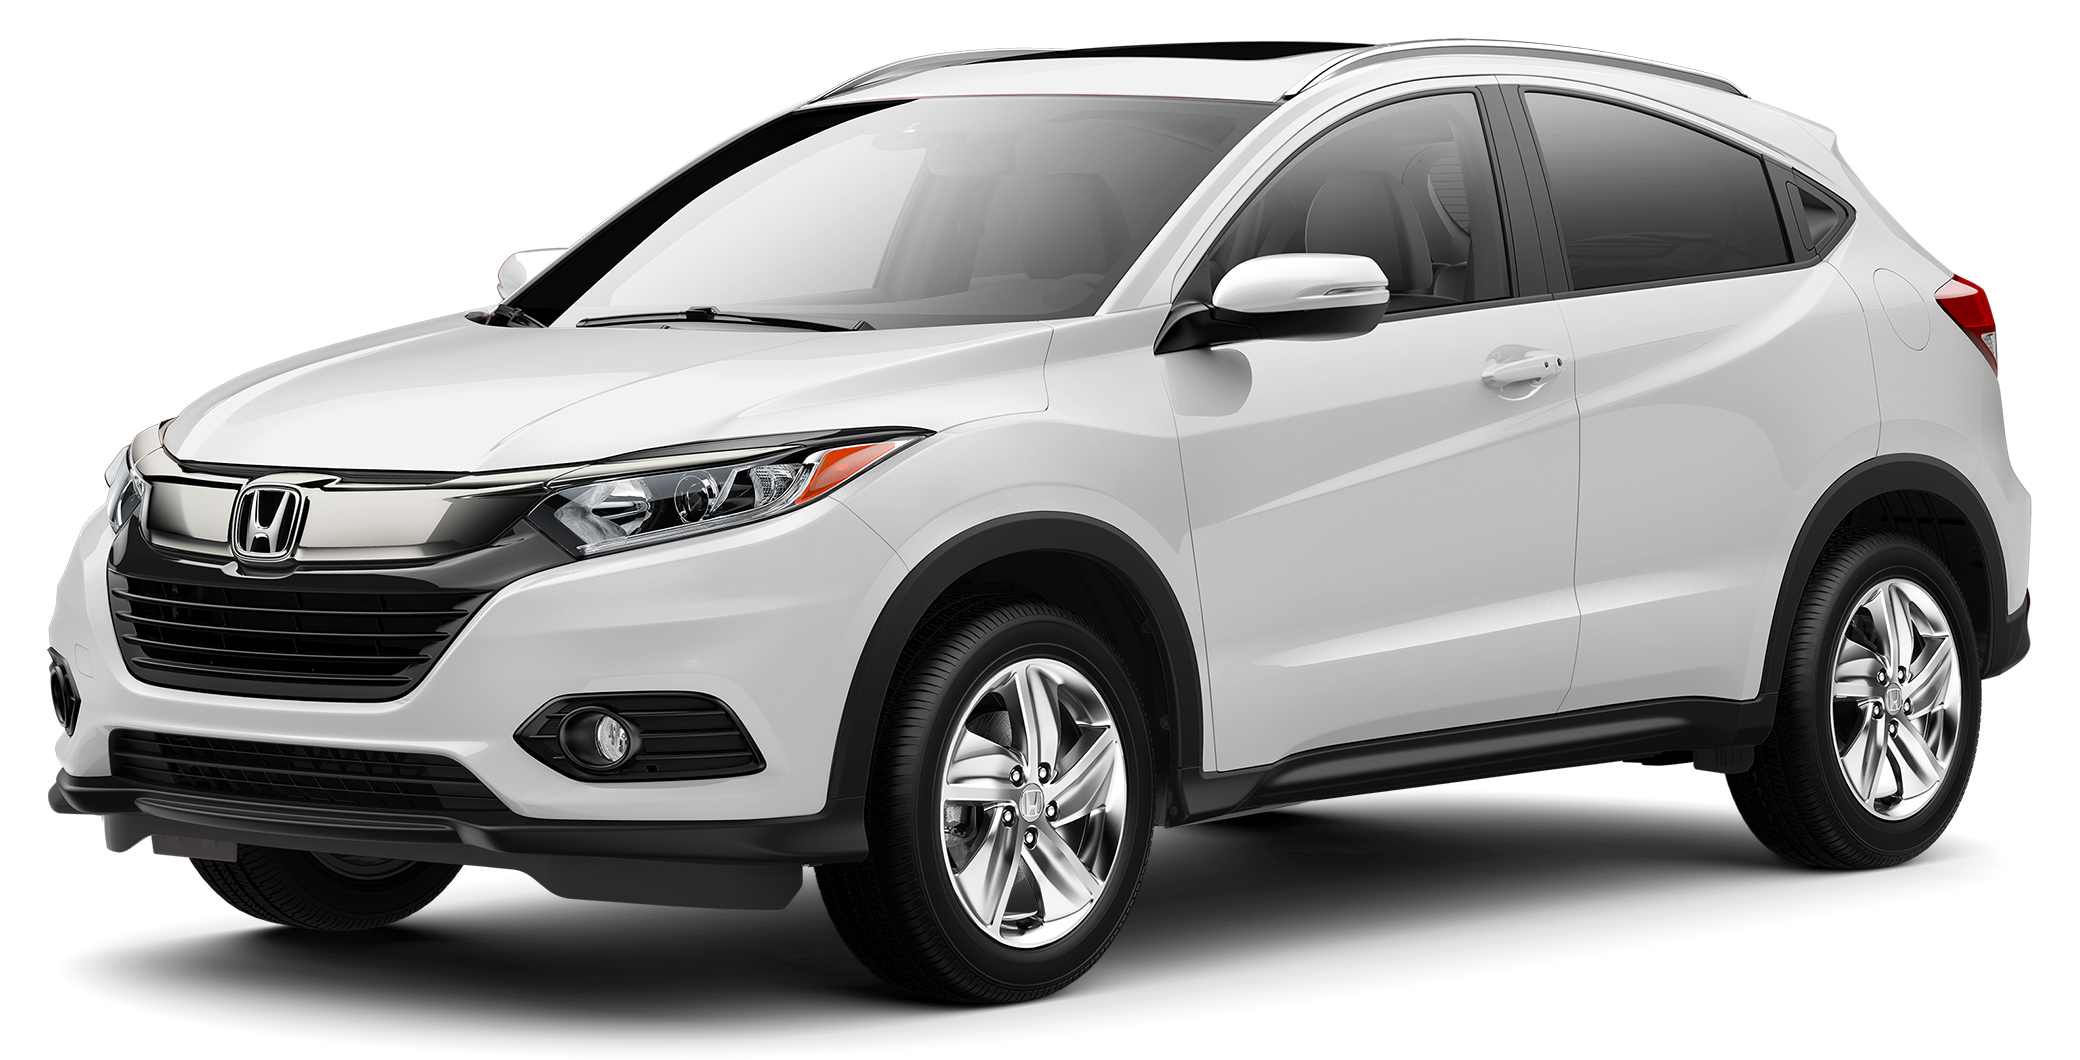 92 Best Review 2020 Honda Hrv Youtube Reviews by 2020 Honda Hrv Youtube